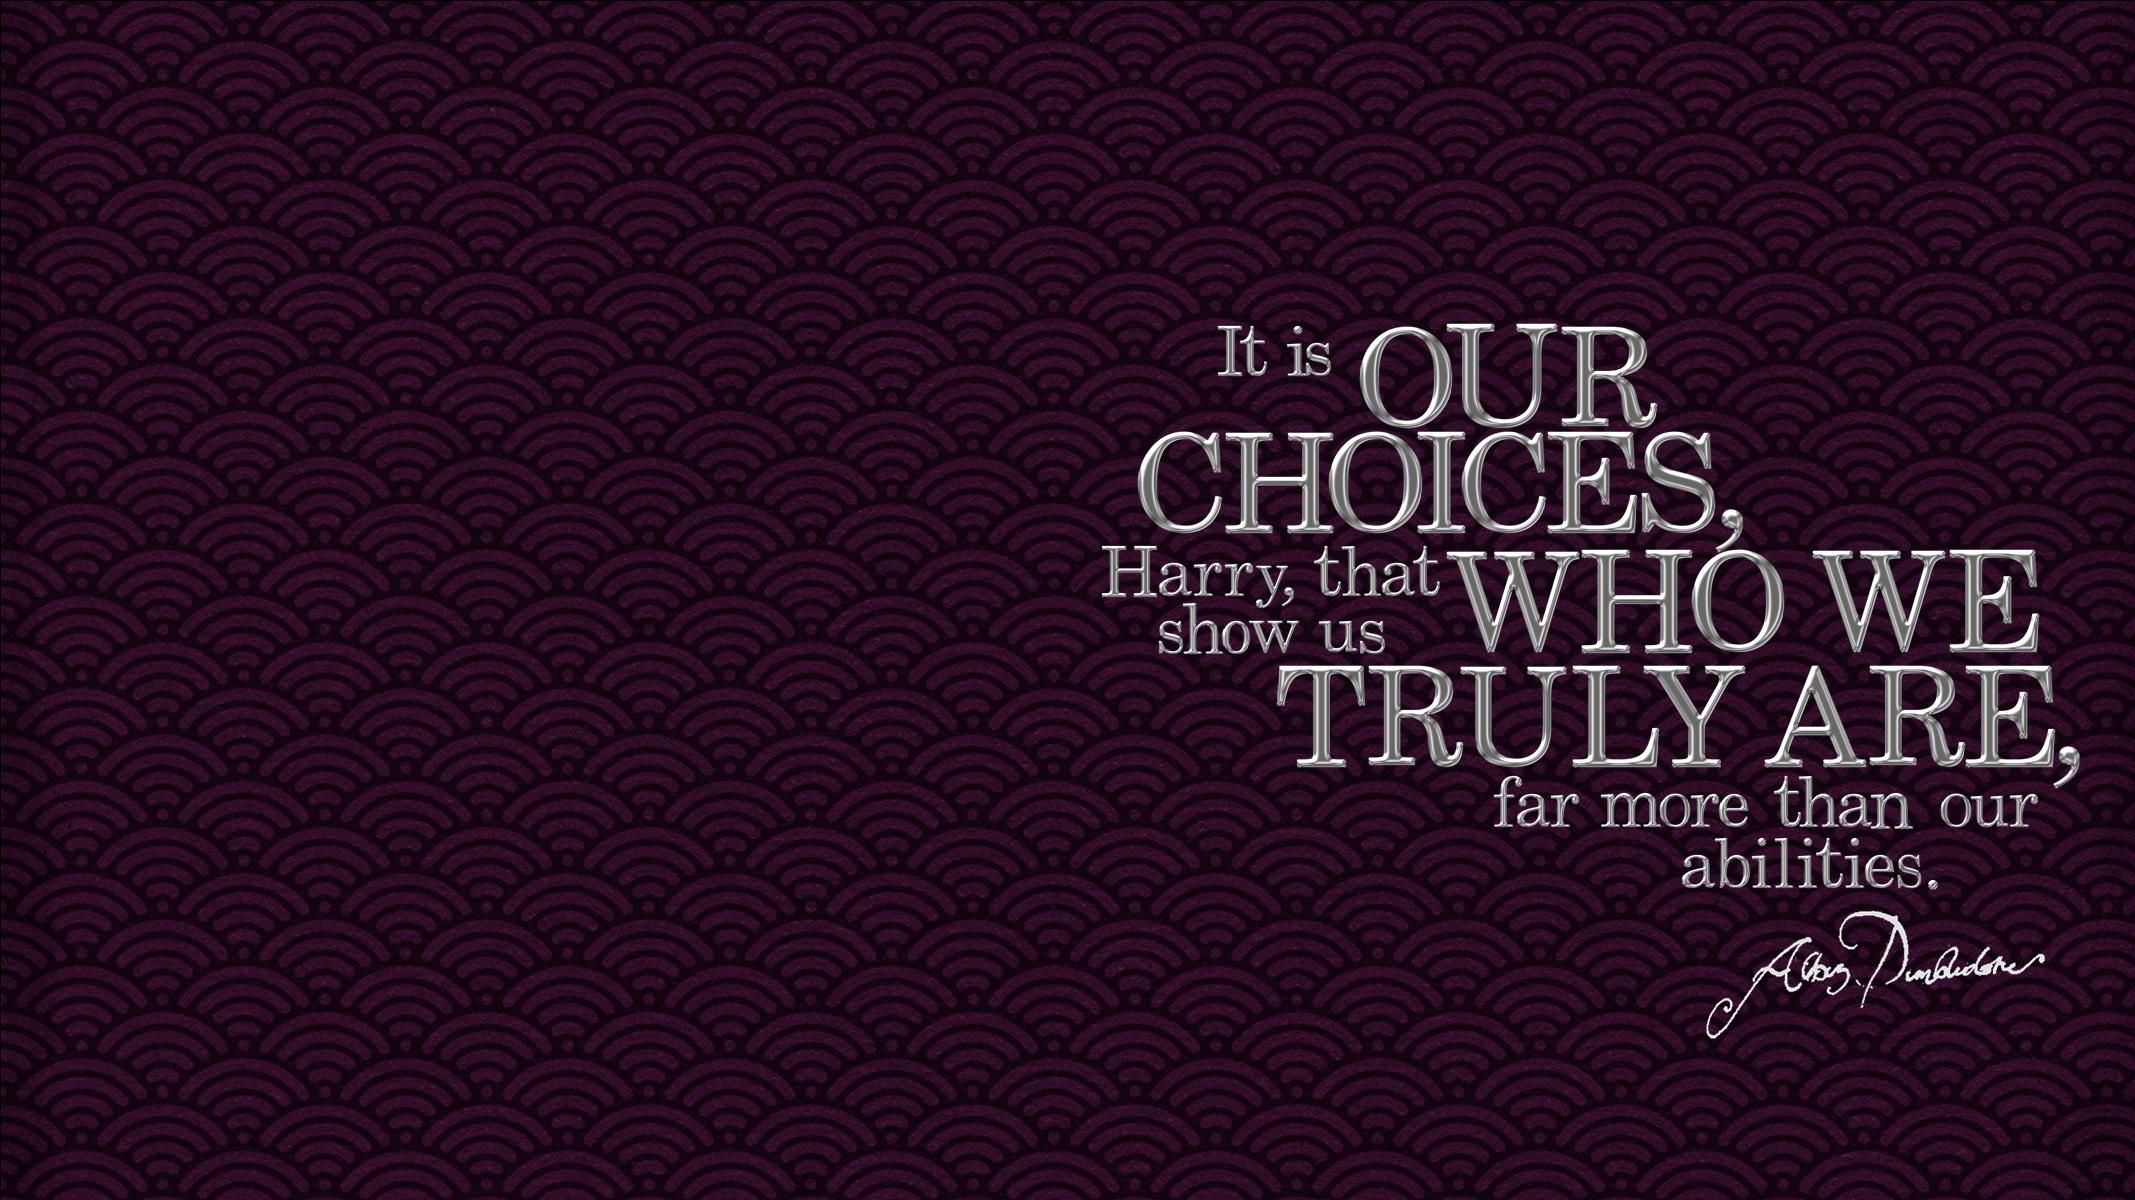 dumbledore quote widescreen wallpaper widescreen wallpaper made